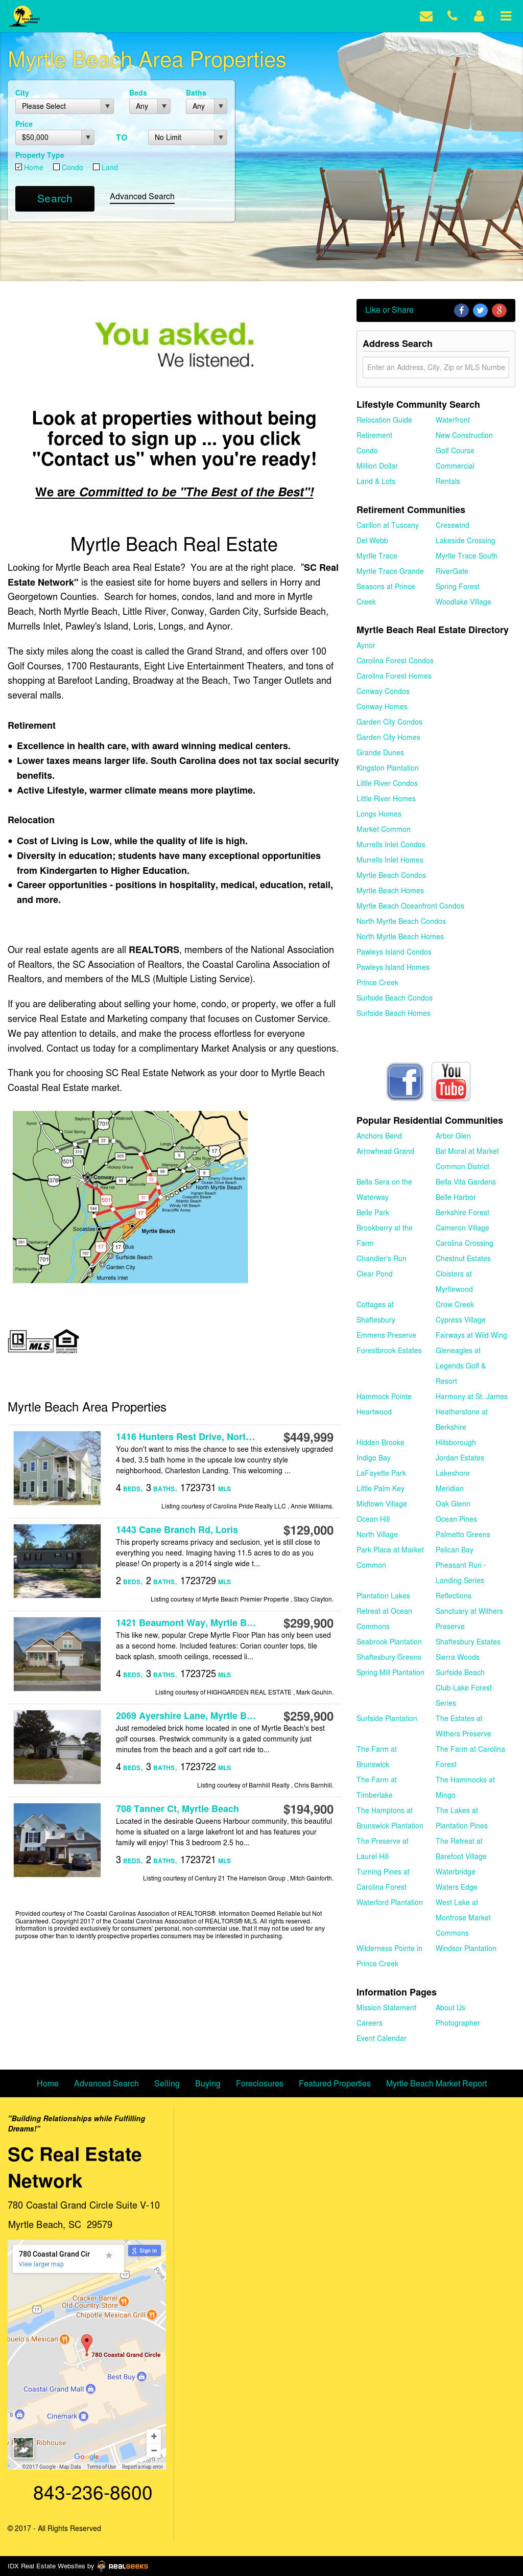 Sc Real Estate Network Myrtle Beach Website History